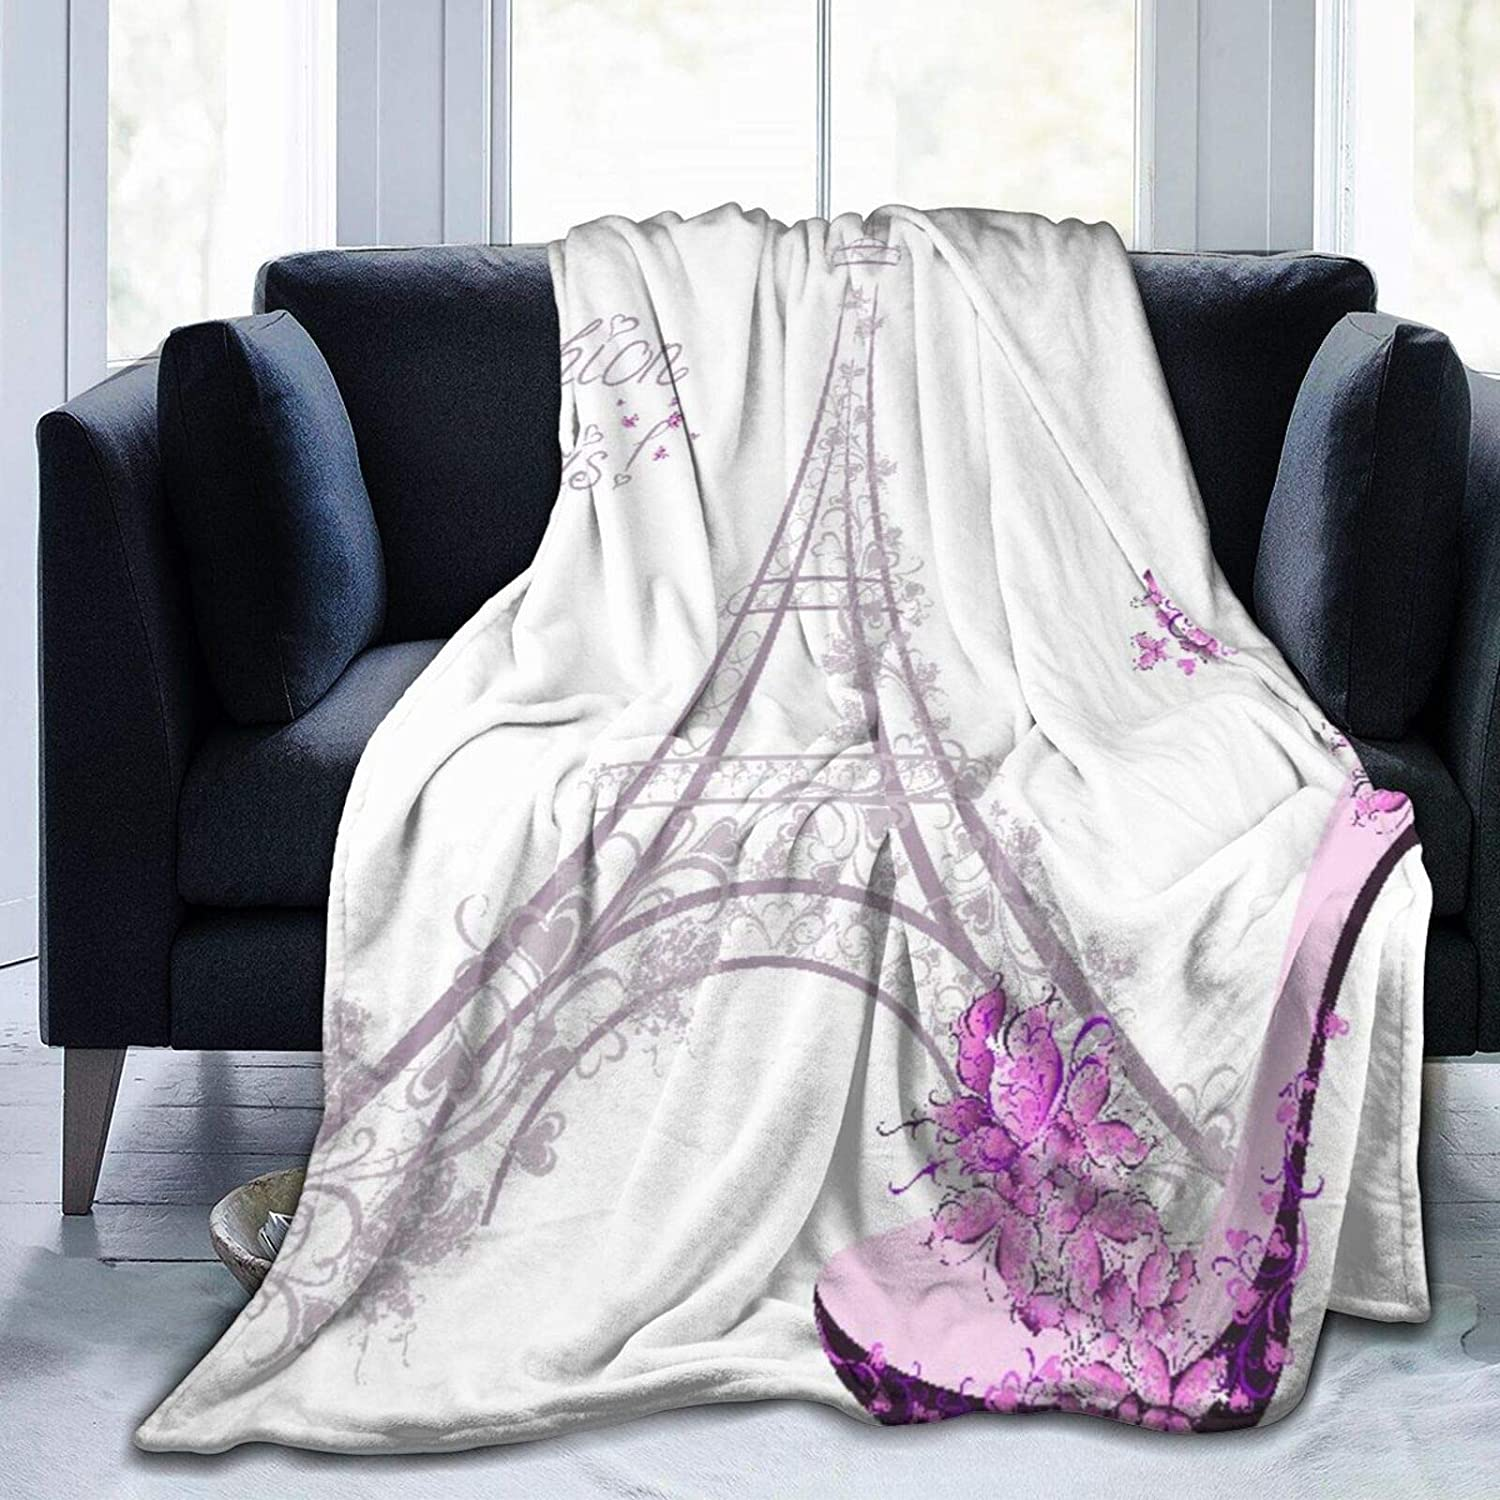 Janrely Direct stock discount Ultra-Soft Micro Fleece Blanket Denver Mall Shoes The On High-Heeled